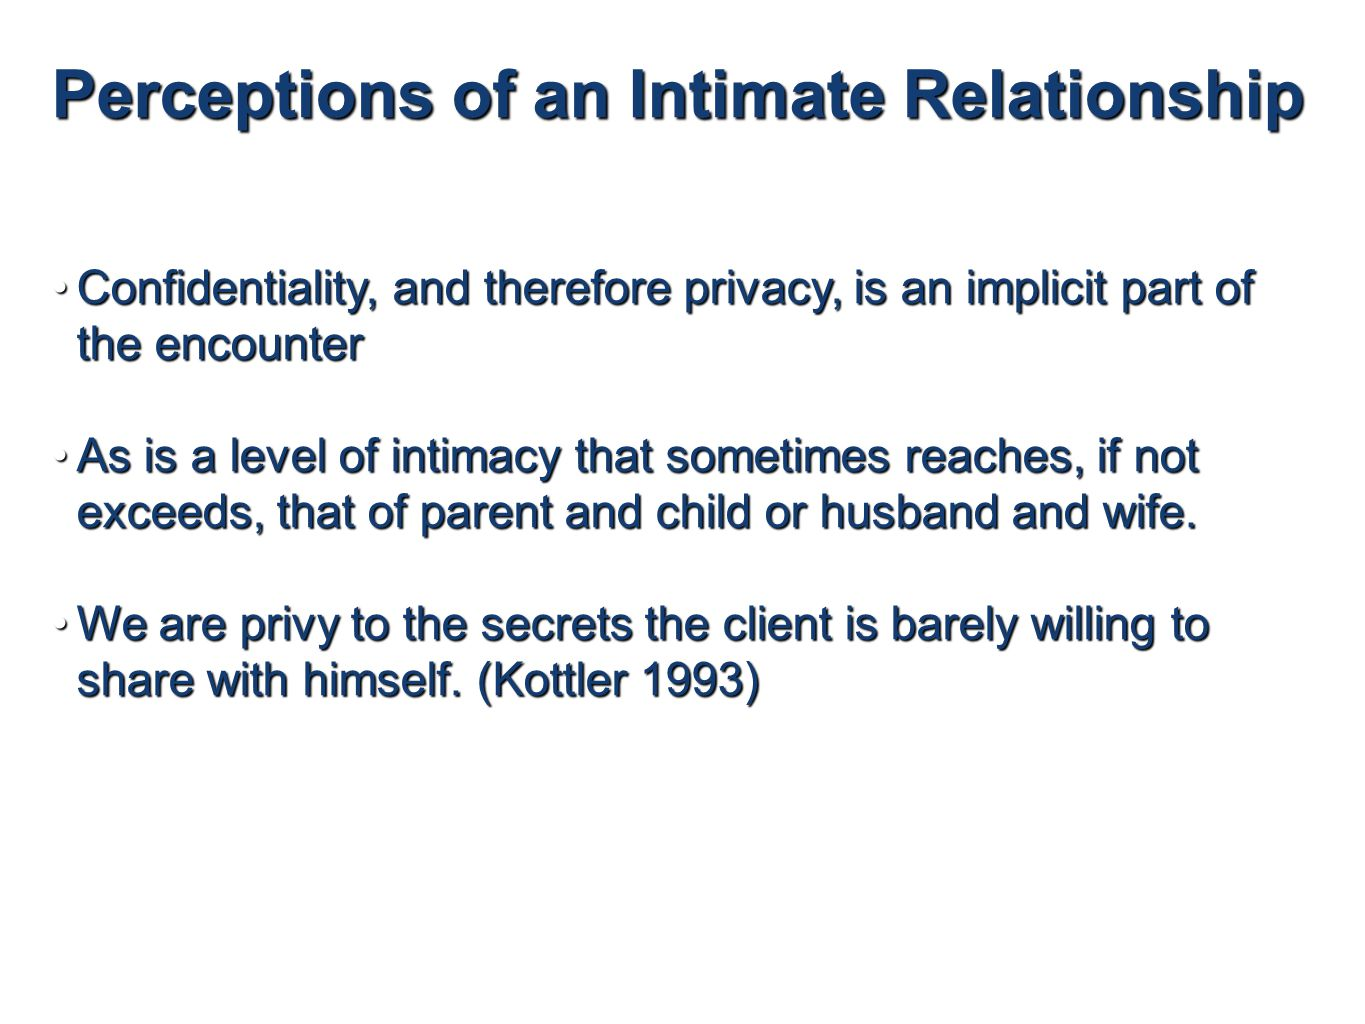 Perceptions of an Intimate Relationship Confidentiality, and therefore privacy, is an implicit part of the encounterConfidentiality, and therefore privacy, is an implicit part of the encounter As is a level of intimacy that sometimes reaches, if not exceeds, that of parent and child or husband and wife.As is a level of intimacy that sometimes reaches, if not exceeds, that of parent and child or husband and wife.